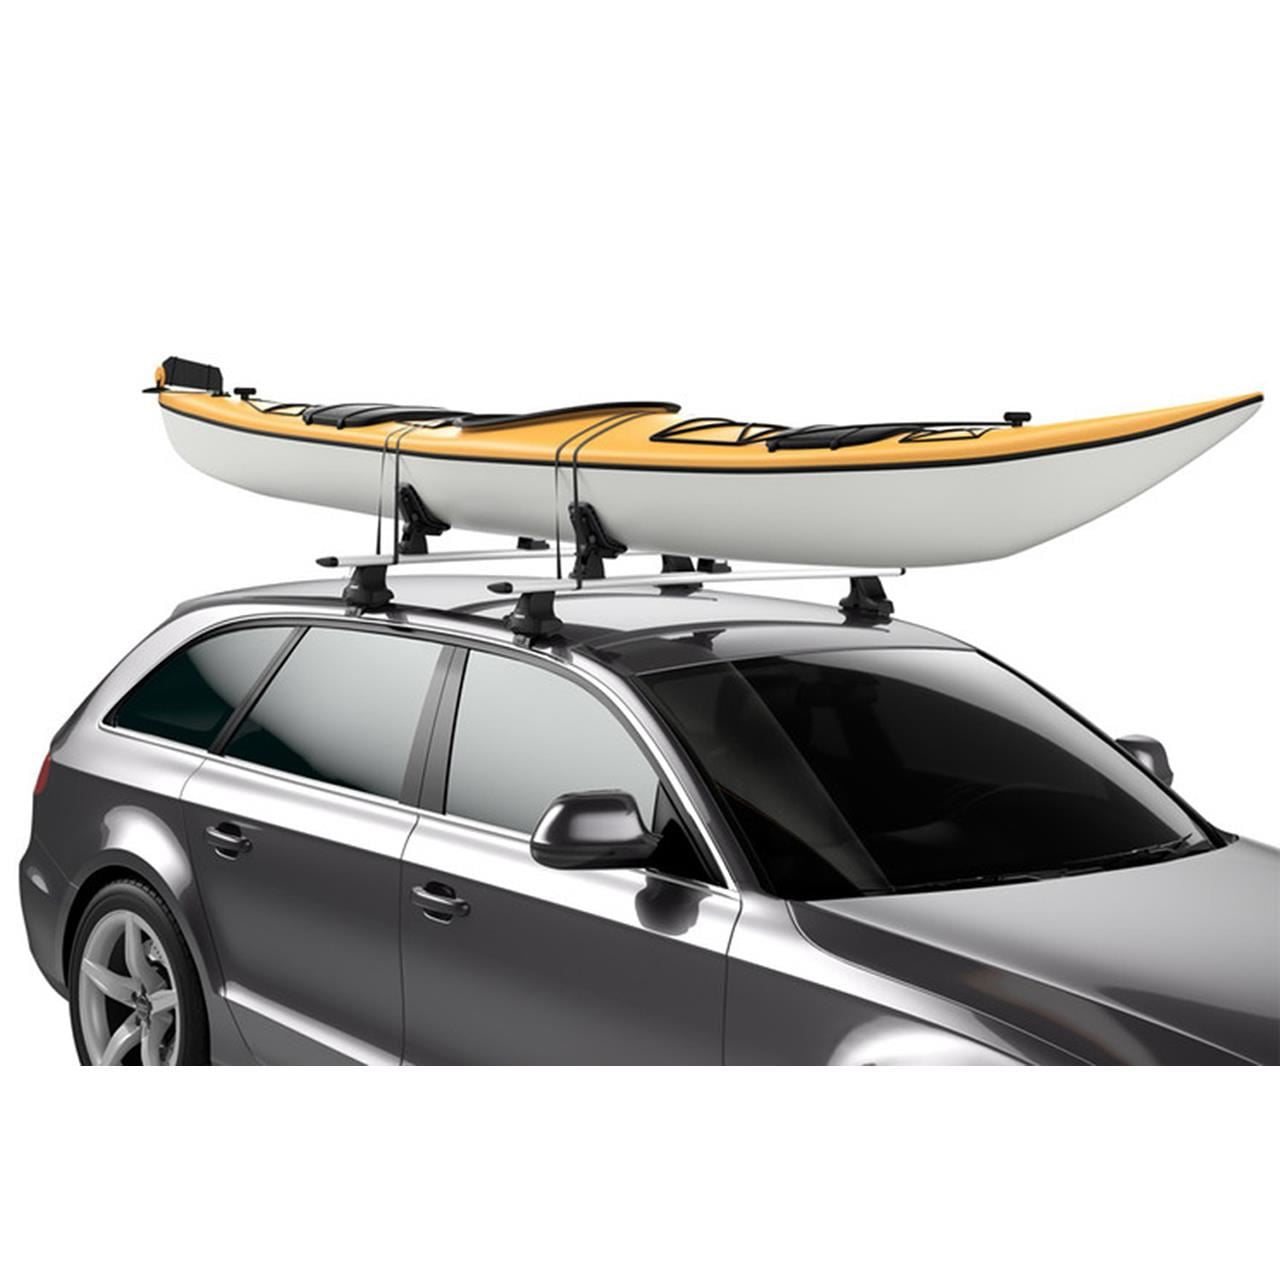 Suport transport echipament nautic Thule DockGrip 895 2